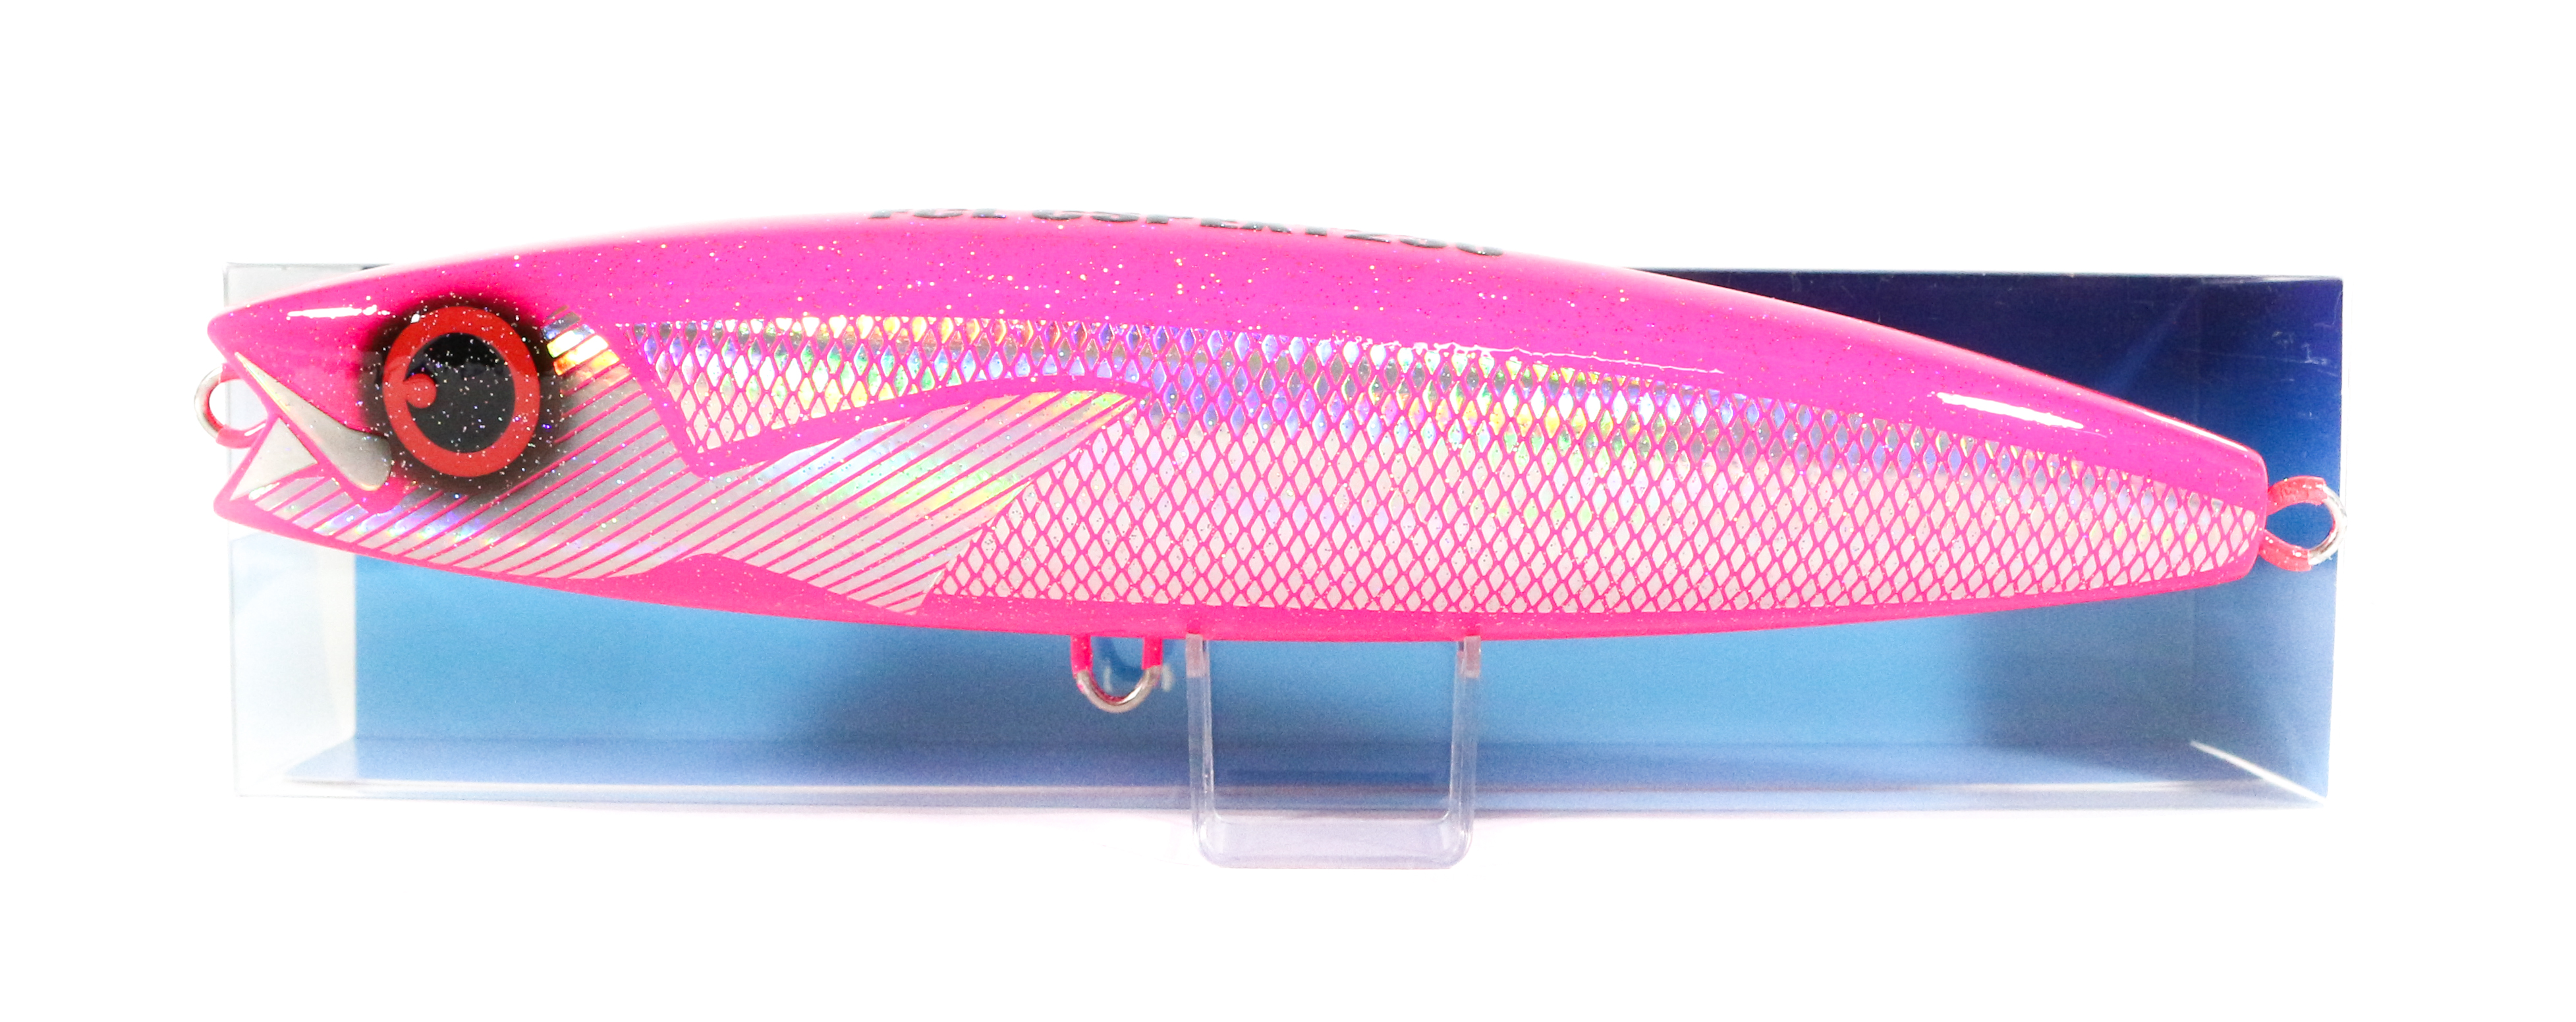 FCL Labo Stick Bait CSP EXT 230F Floating Lure 165 grams AP (9080)